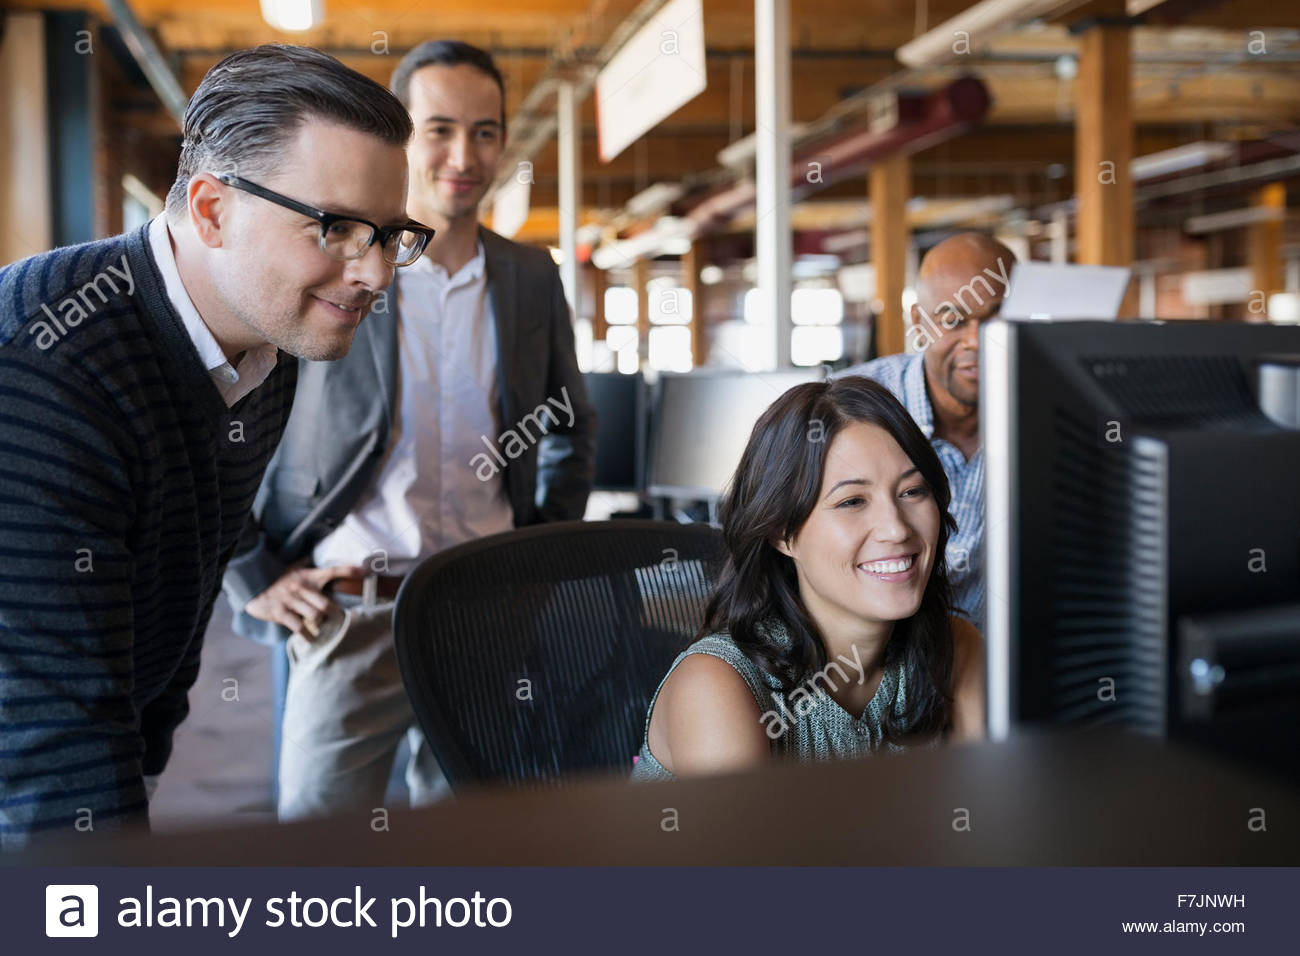 Business people working at computer in office - Stock Image